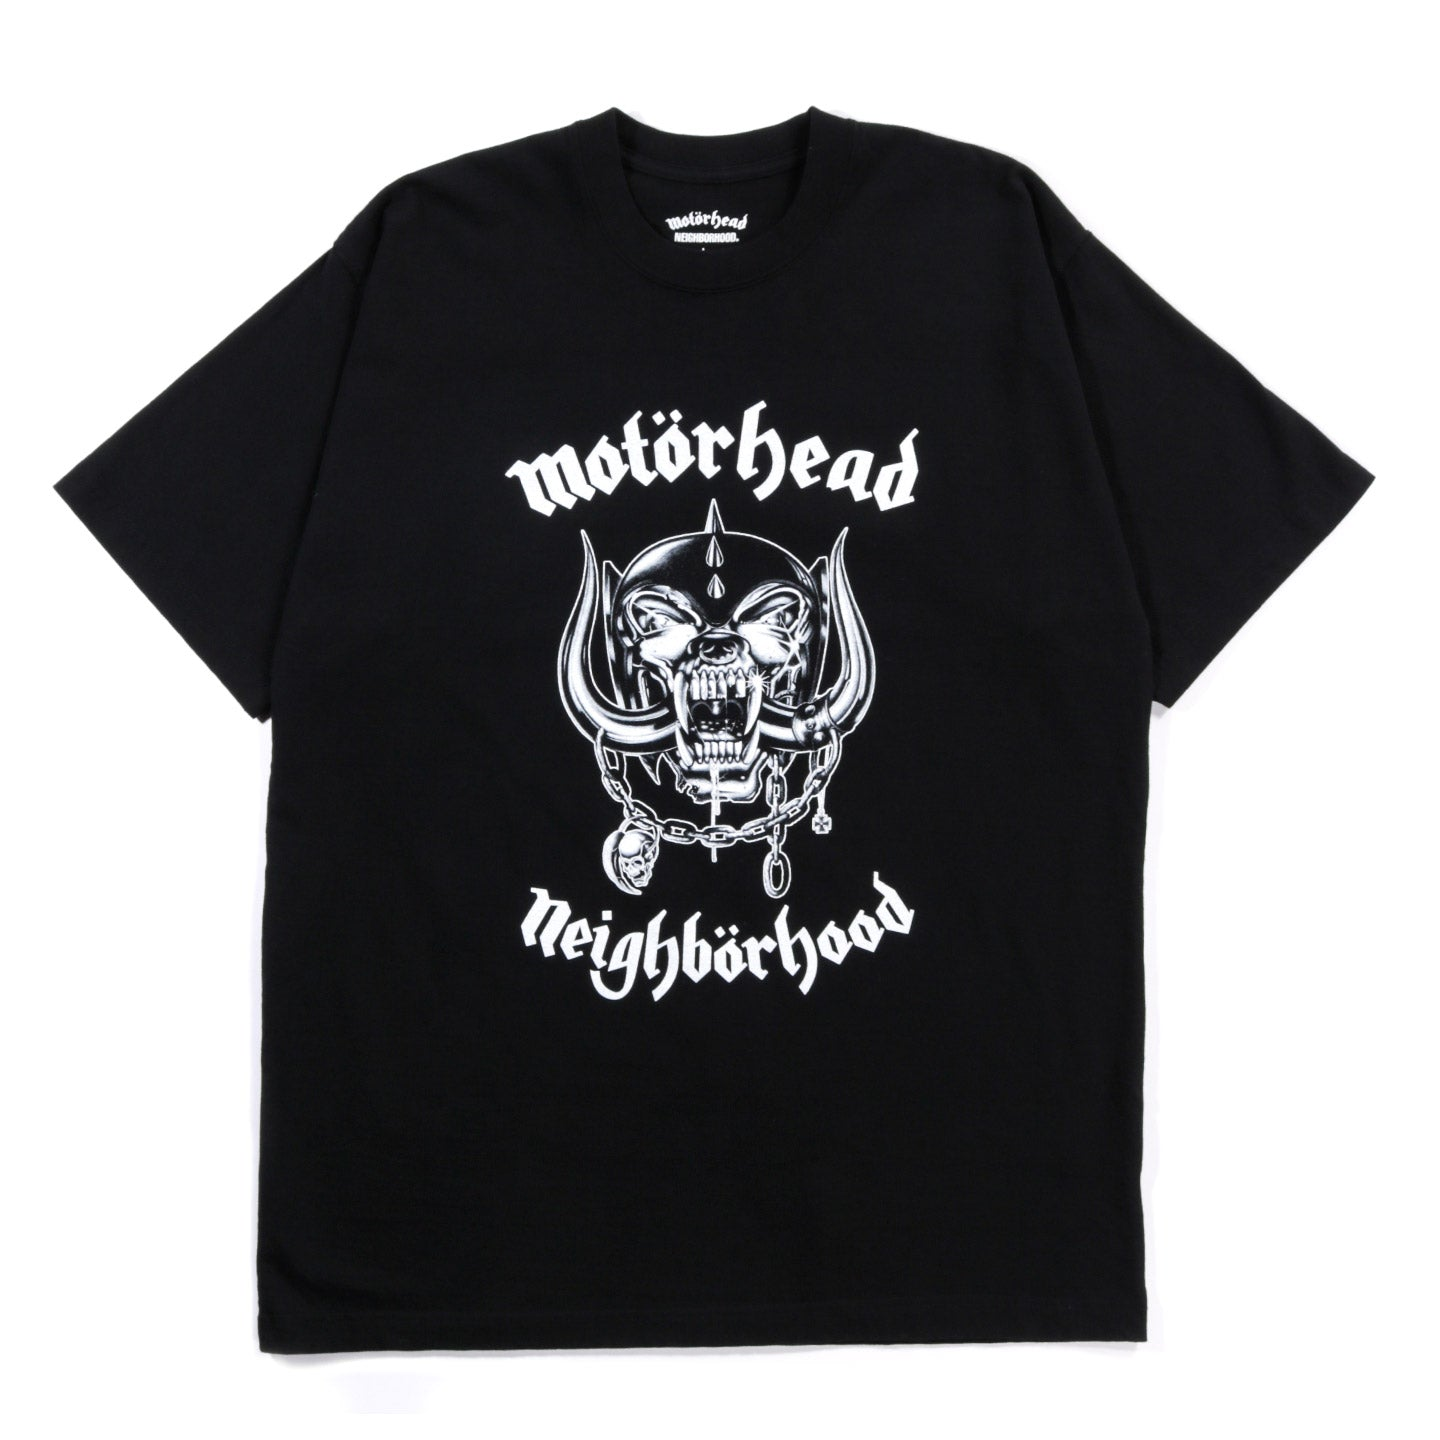 NEIGHBORHOOD MOTORHEAD SS TEE BLACK